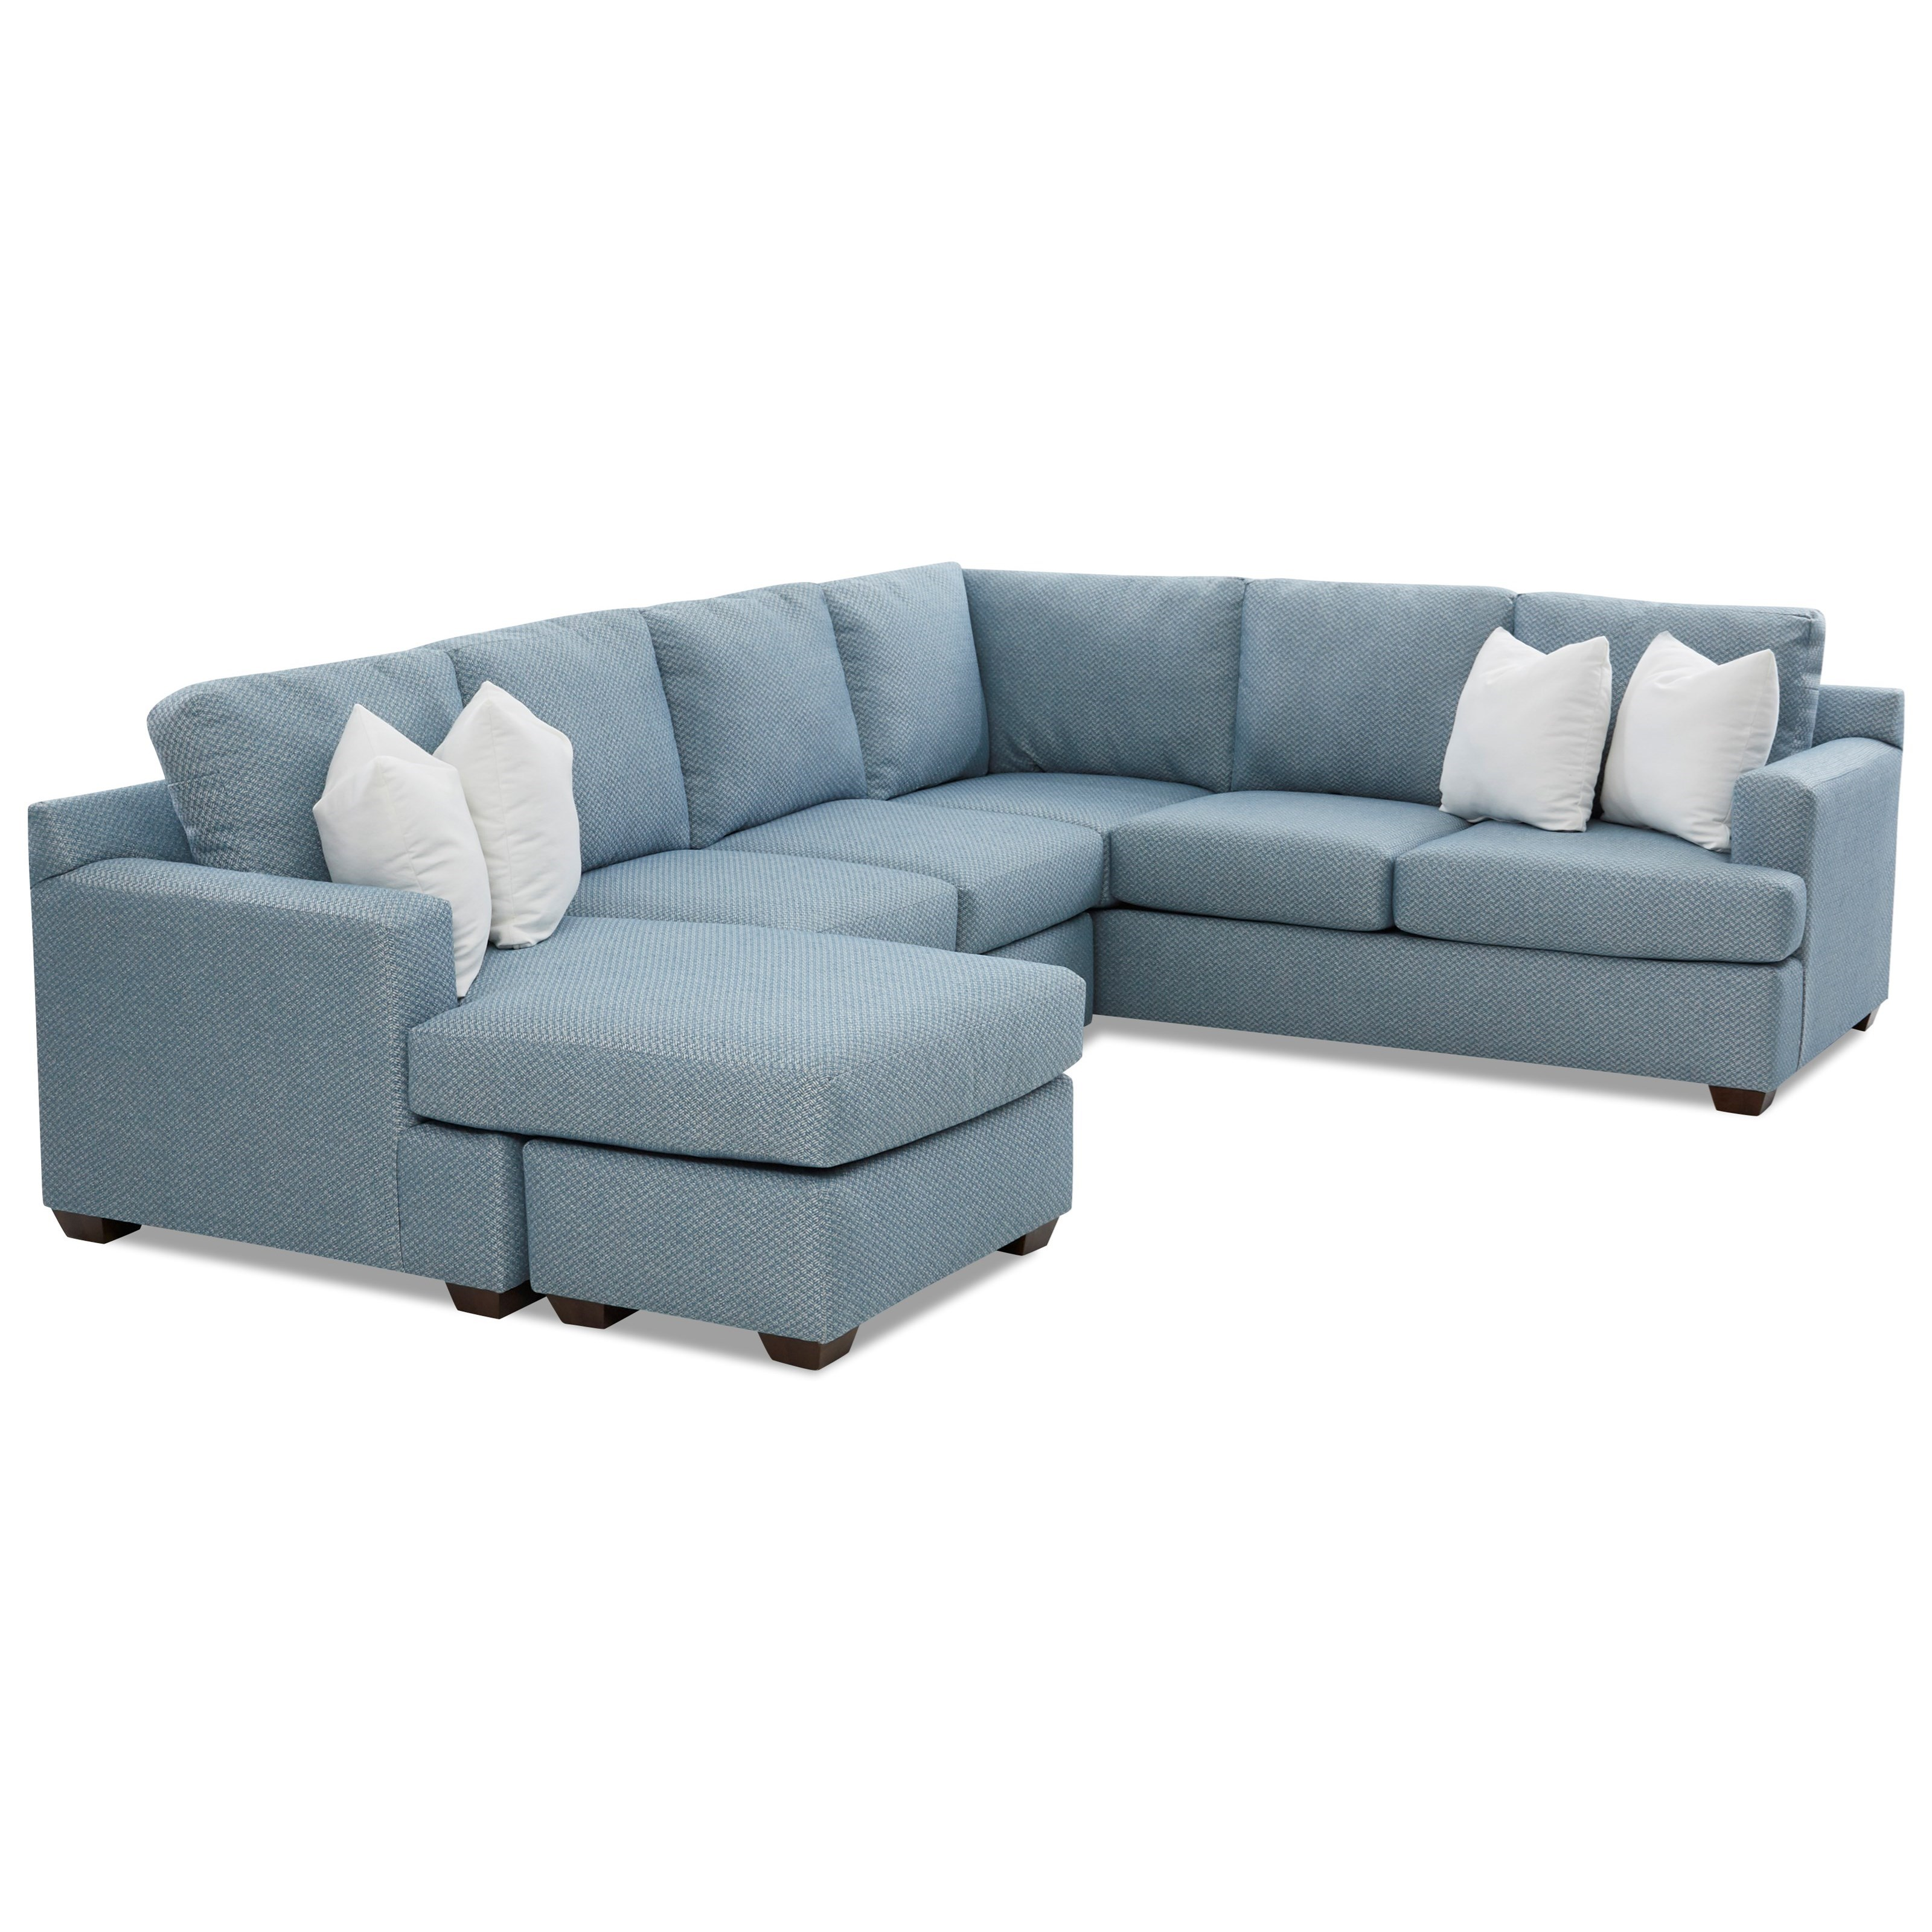 5-Seat Sectional Sofa with LAF Chaise Ottoman